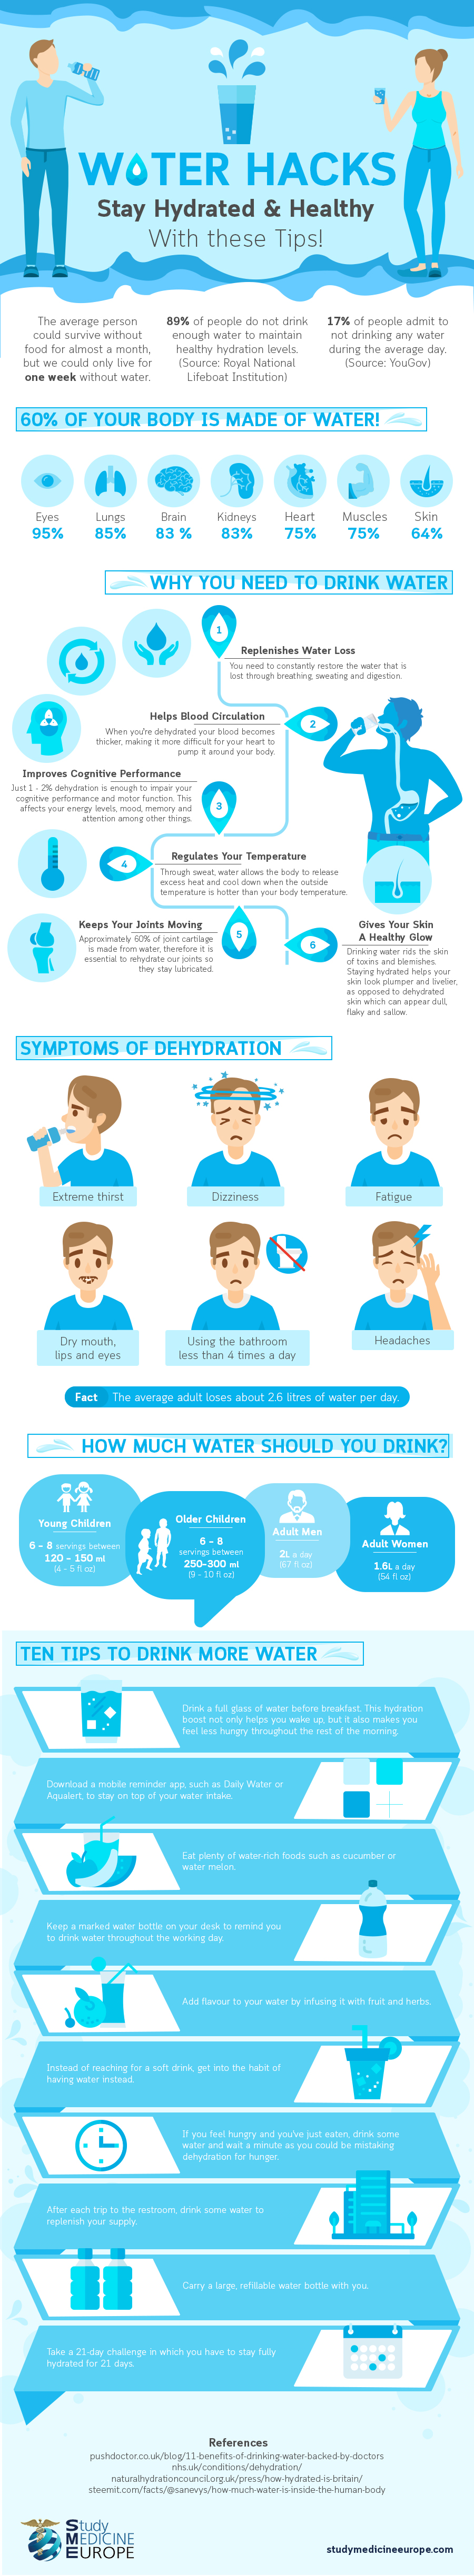 Water hacks- Stay hydrated with these tips(Infographic).jpg